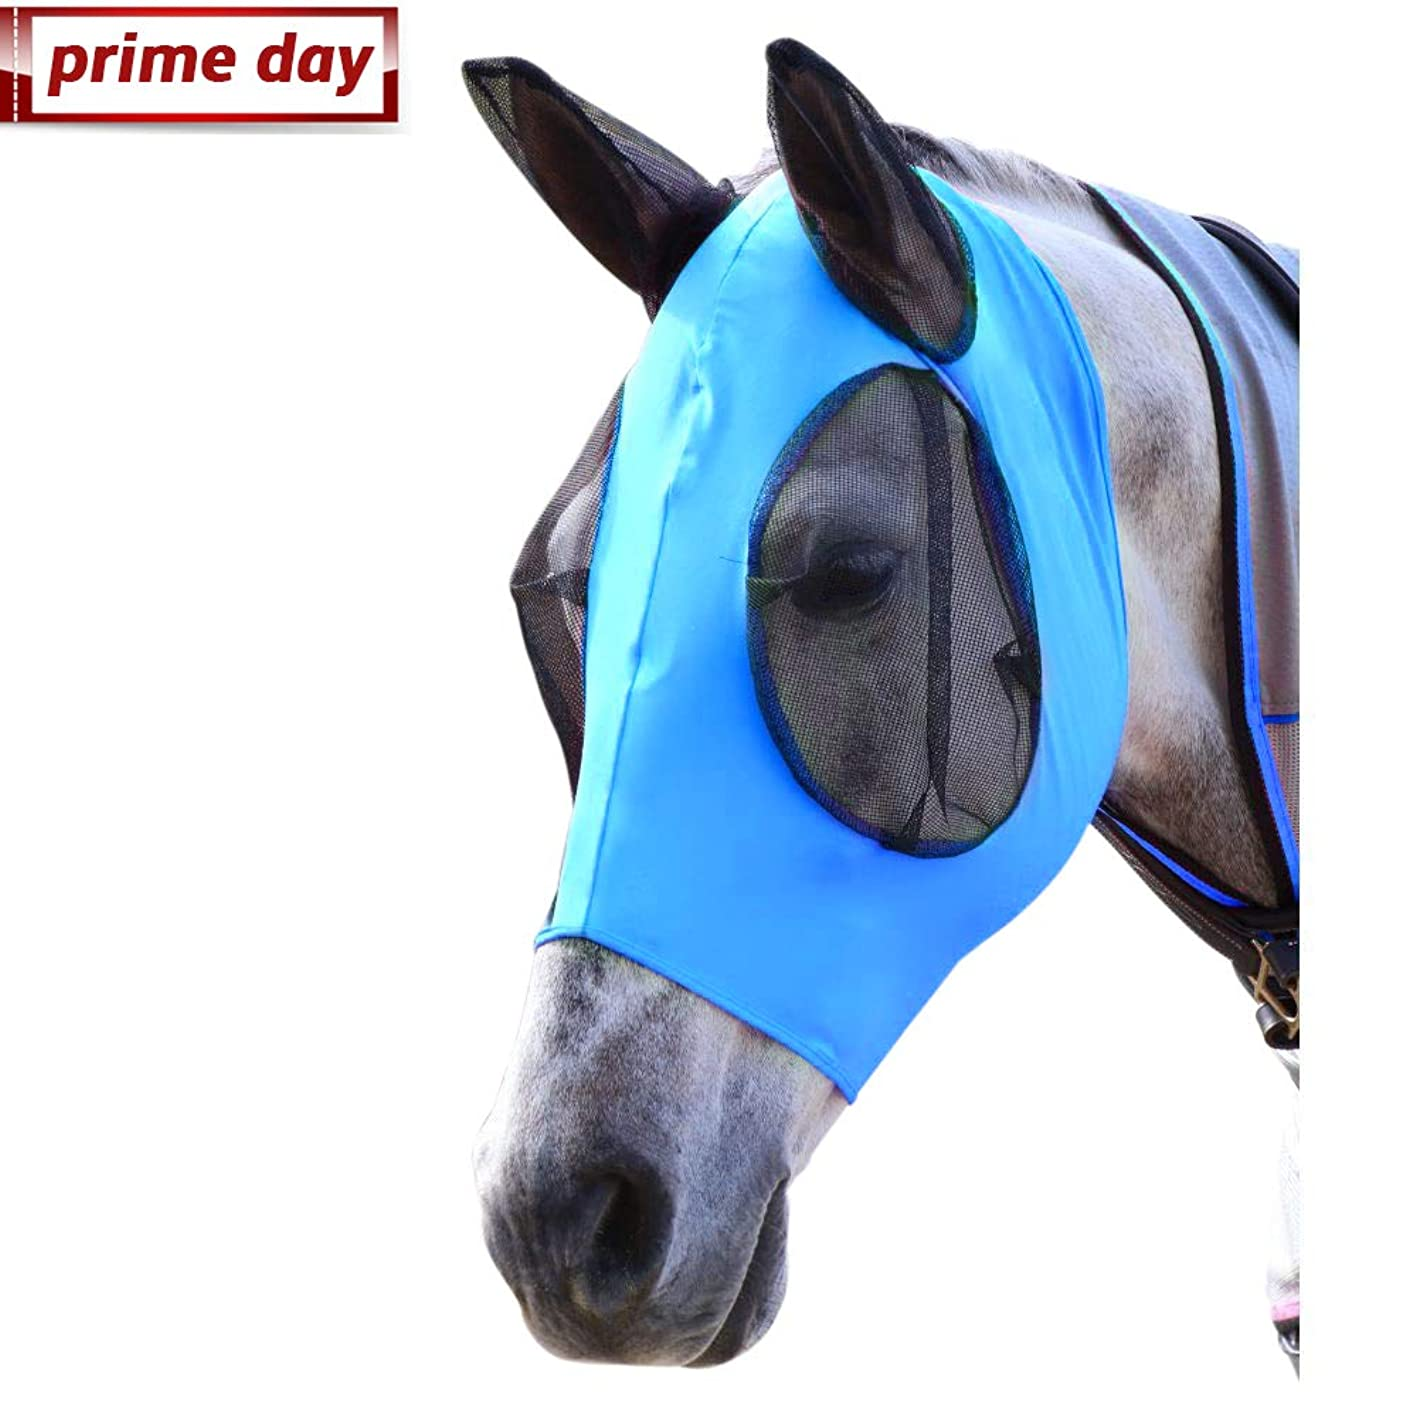 Horse Fly Mask, Fly Mask with Nose and Ears - Mesh Mask Effectively Protects The Horse from Sandstorms, Avoids Direct Light and Blocks The Harassment of Flies While Allowing Full Visibility pyhpmjwqubc434